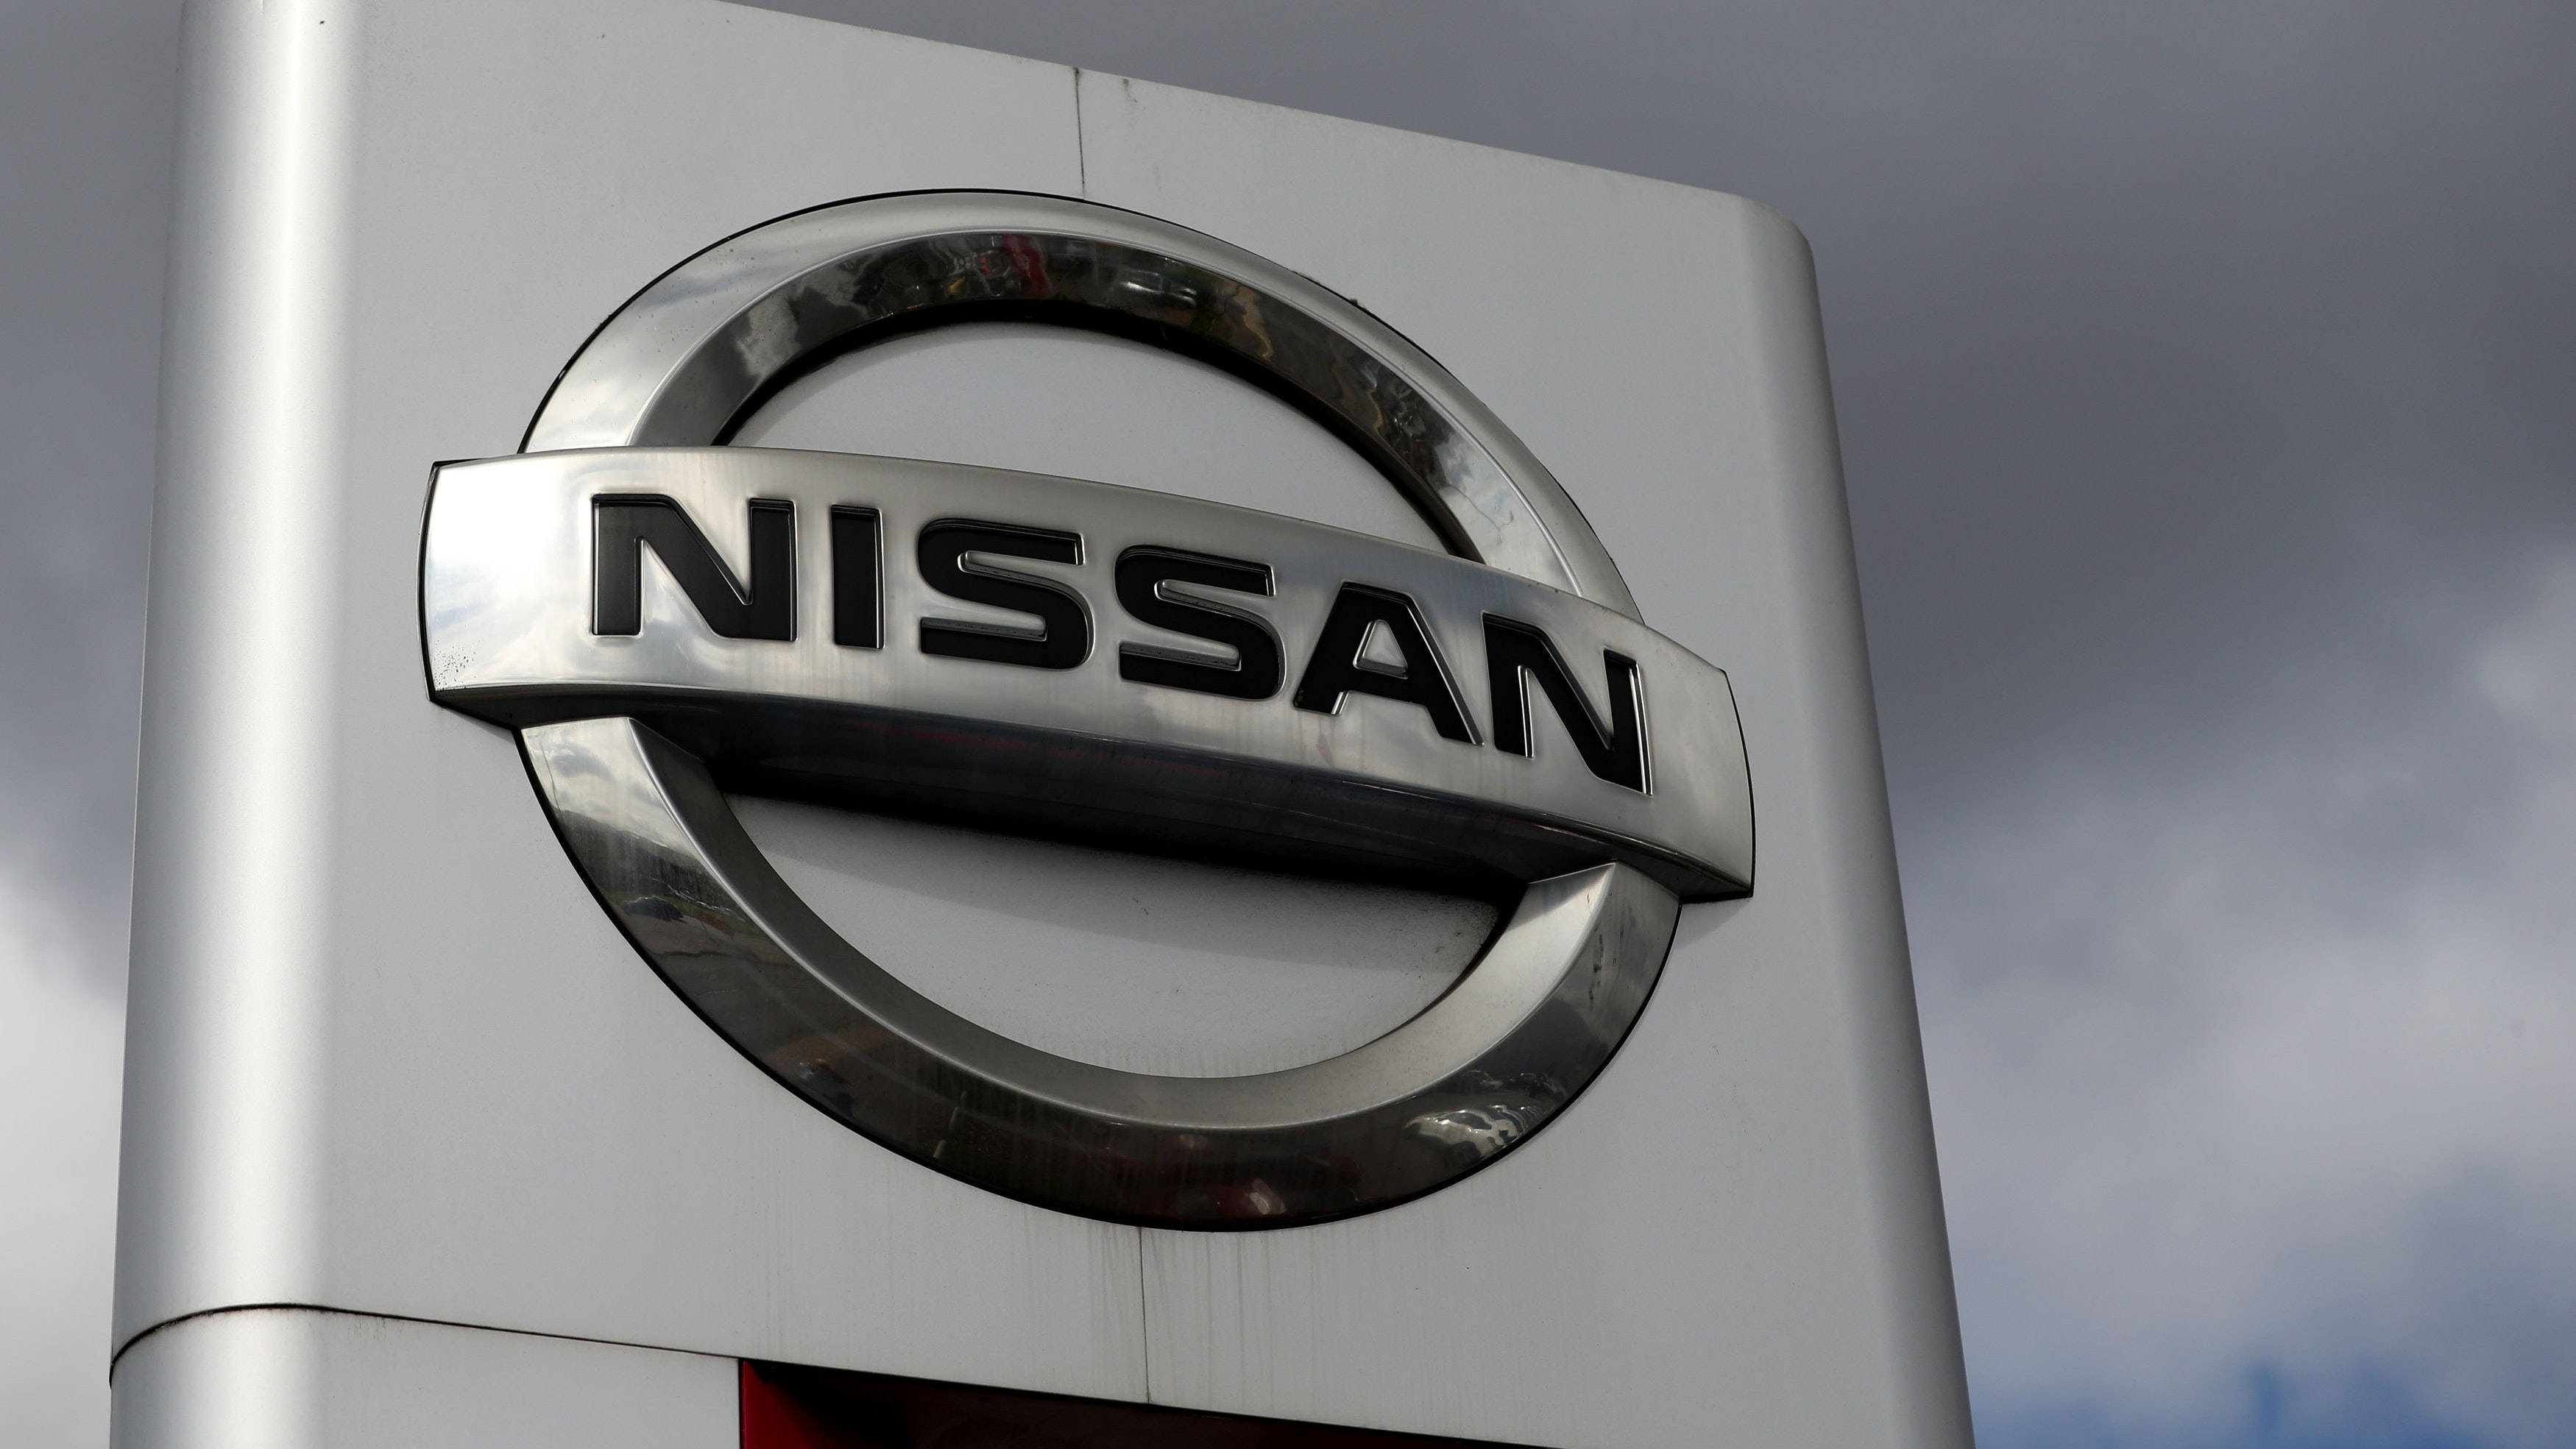 Nissan's second thoughts on UK-made SUV add to Brexit worry